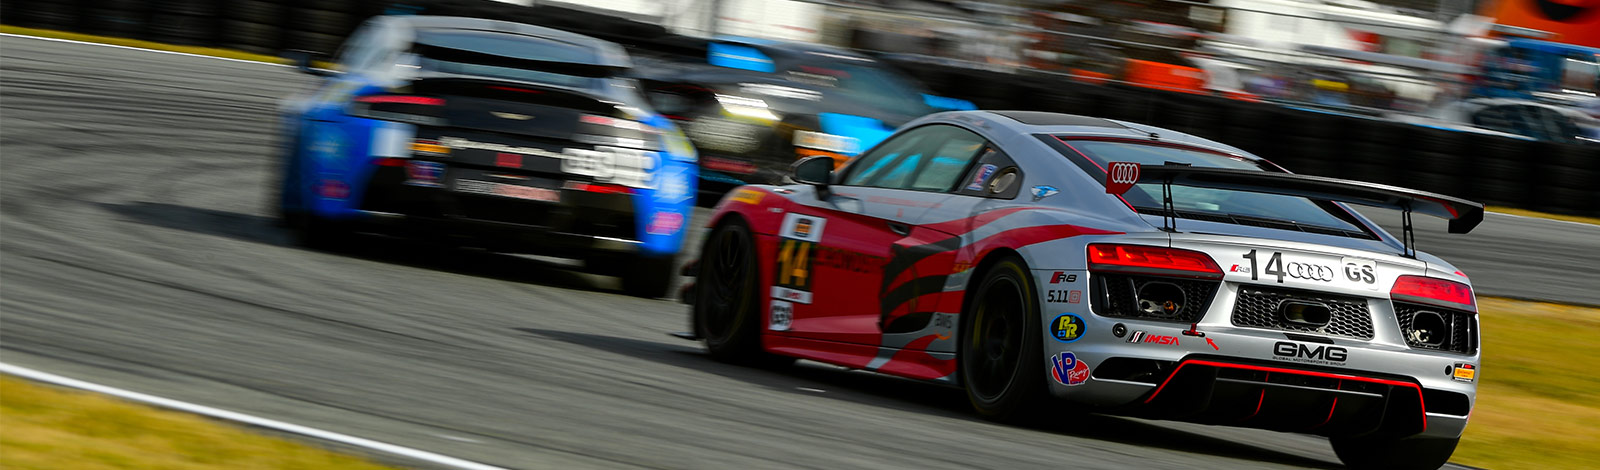 Racing improves Audi's breed… and bottom line